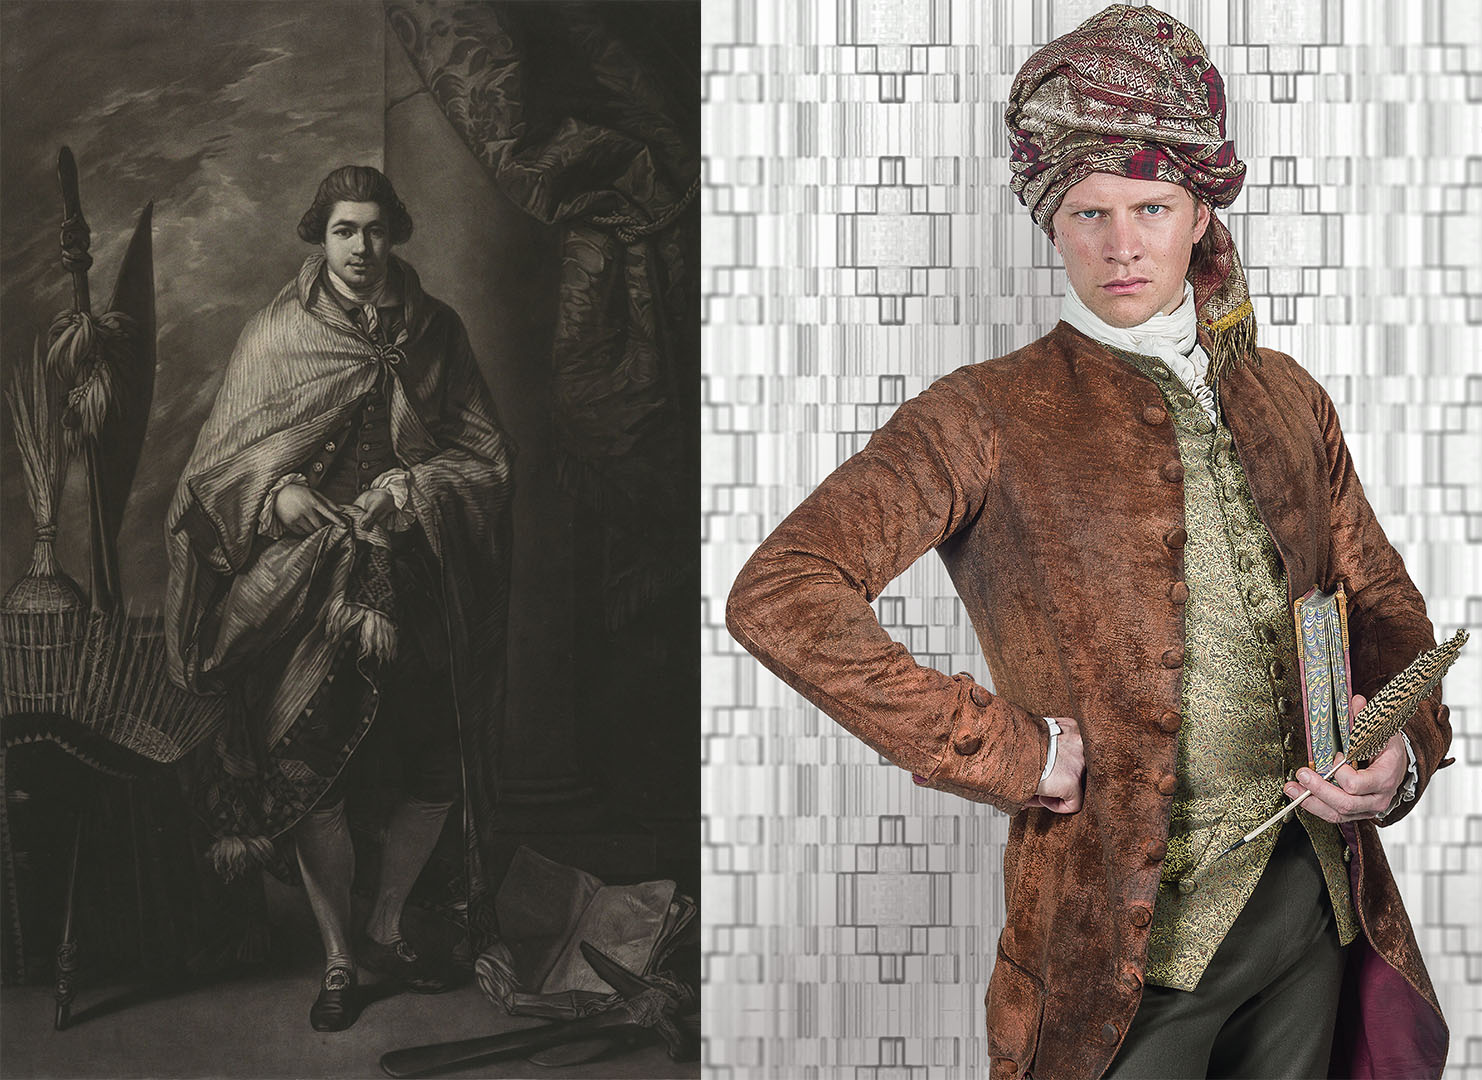 On the left, an illustration of Joseph Banks, on the right, a character poses as Joseph Banks